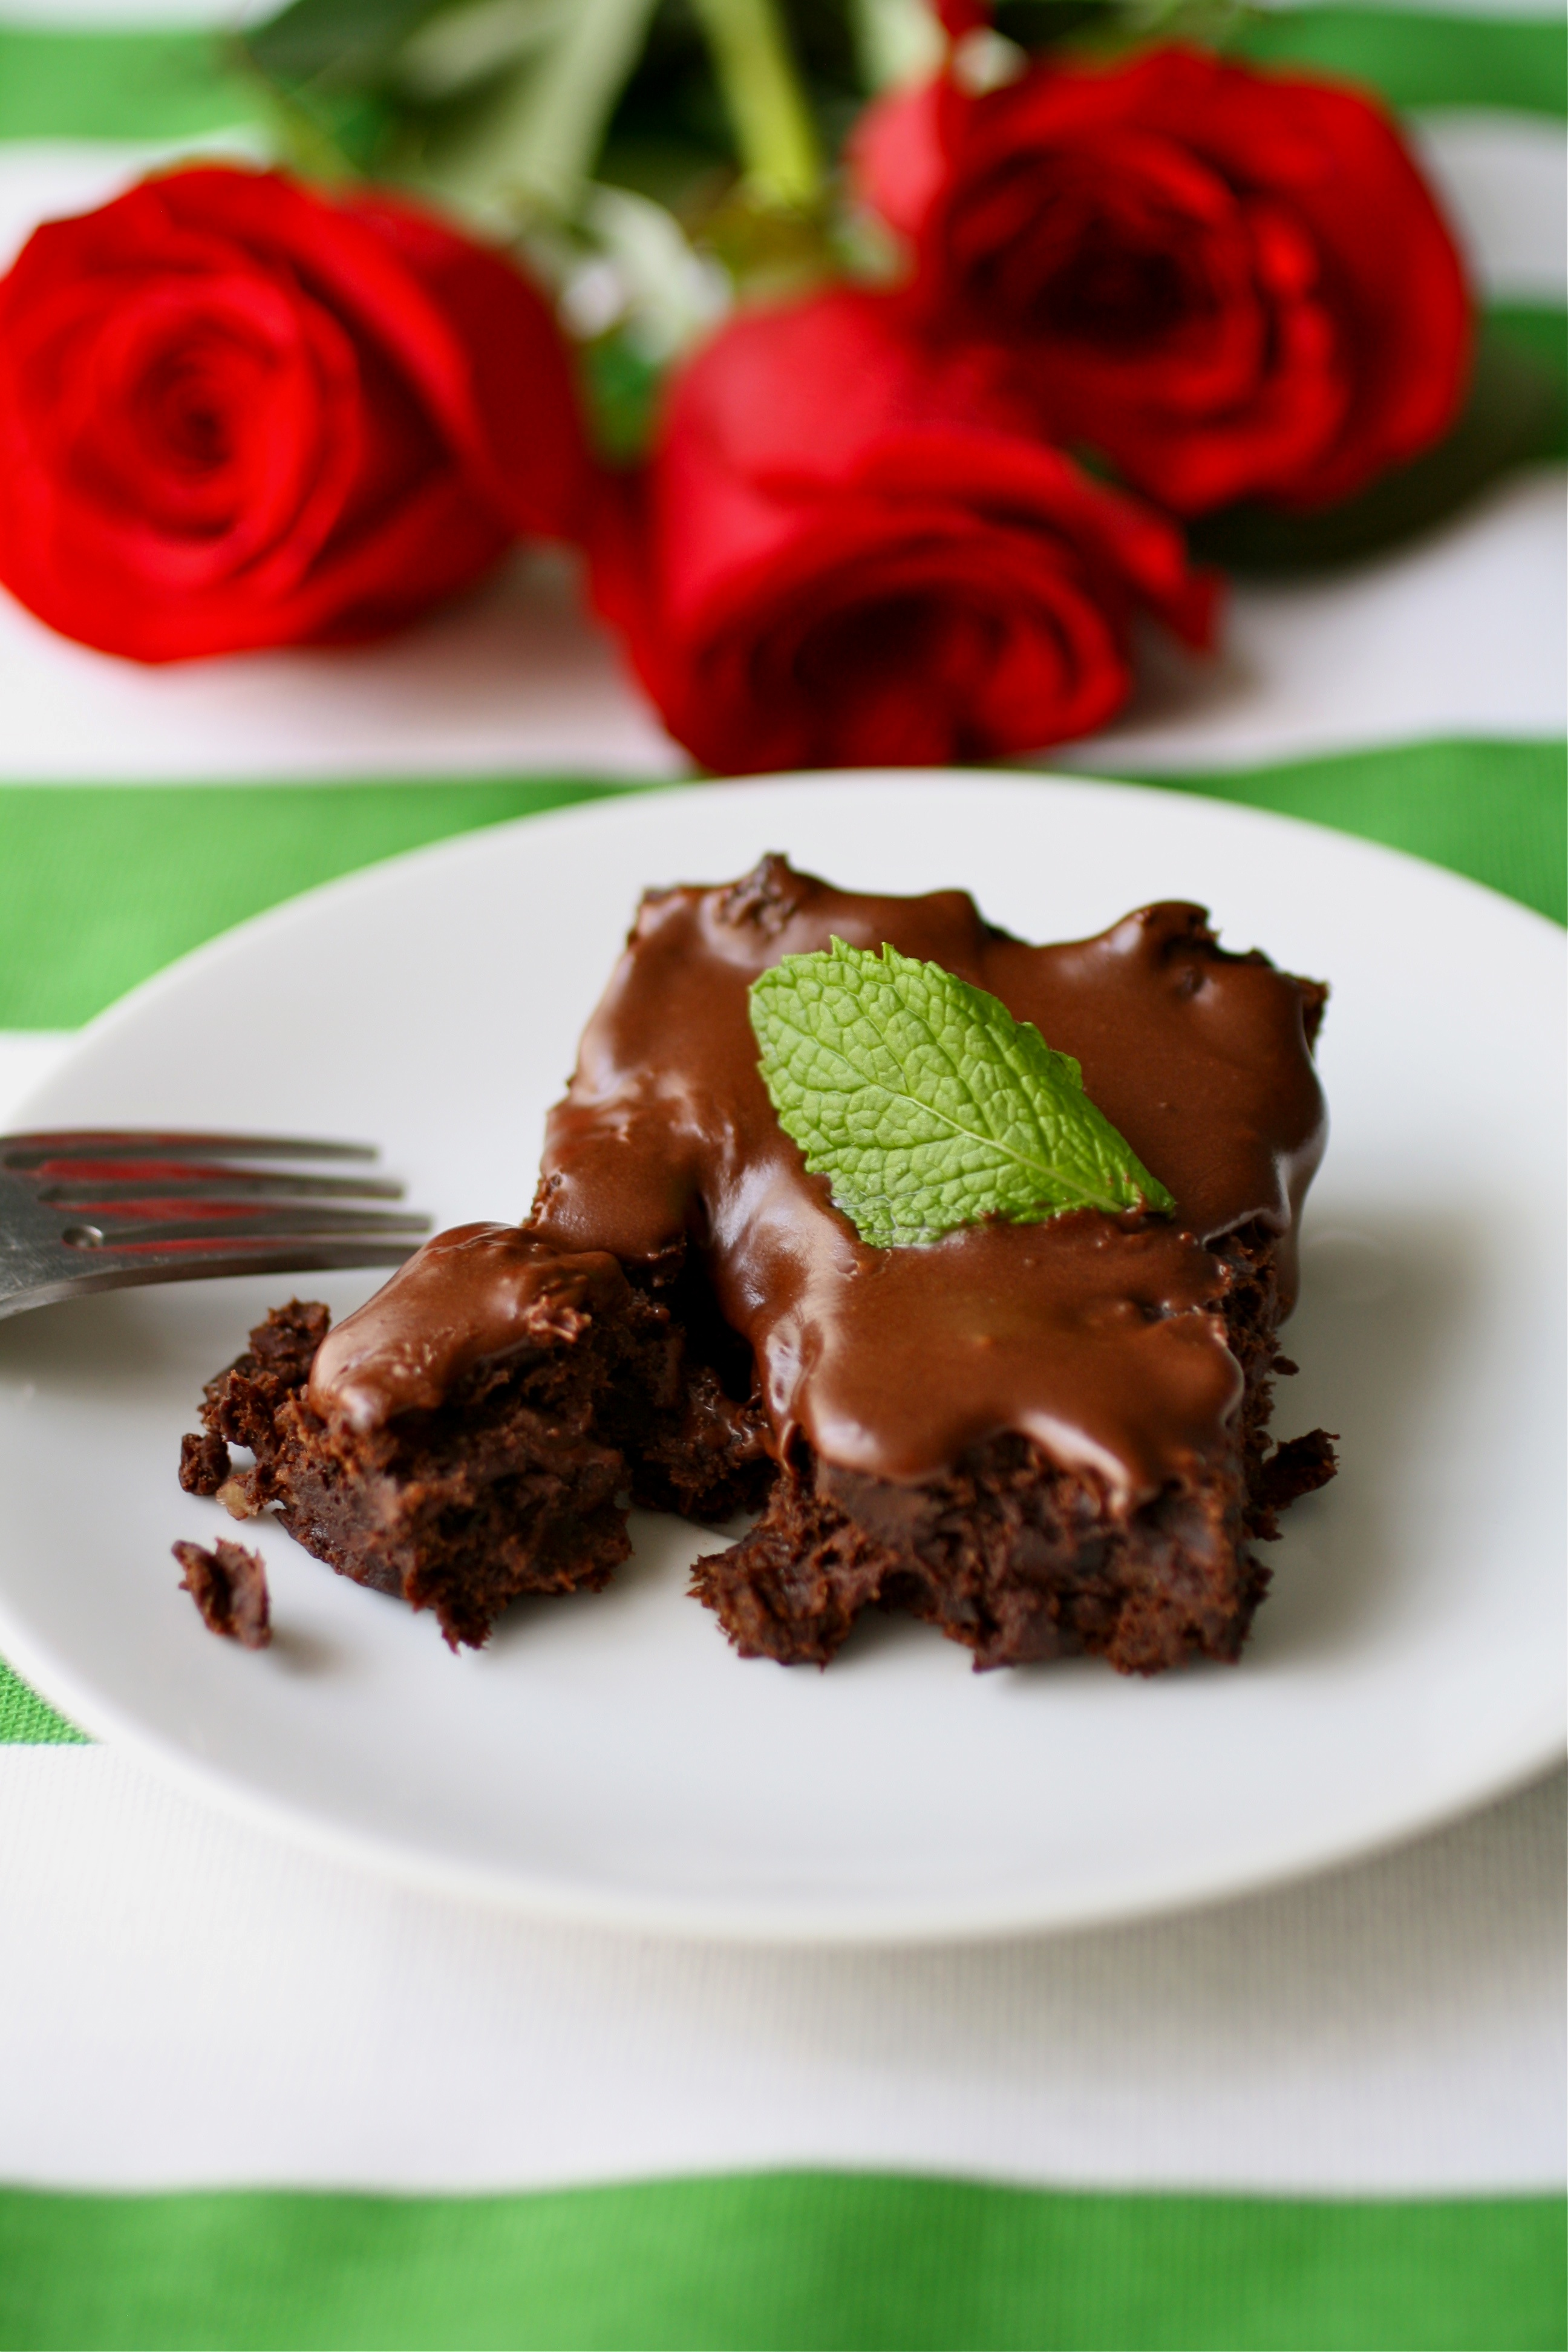 Frosted Mint Julep Black Bean Brownies (dairy free)